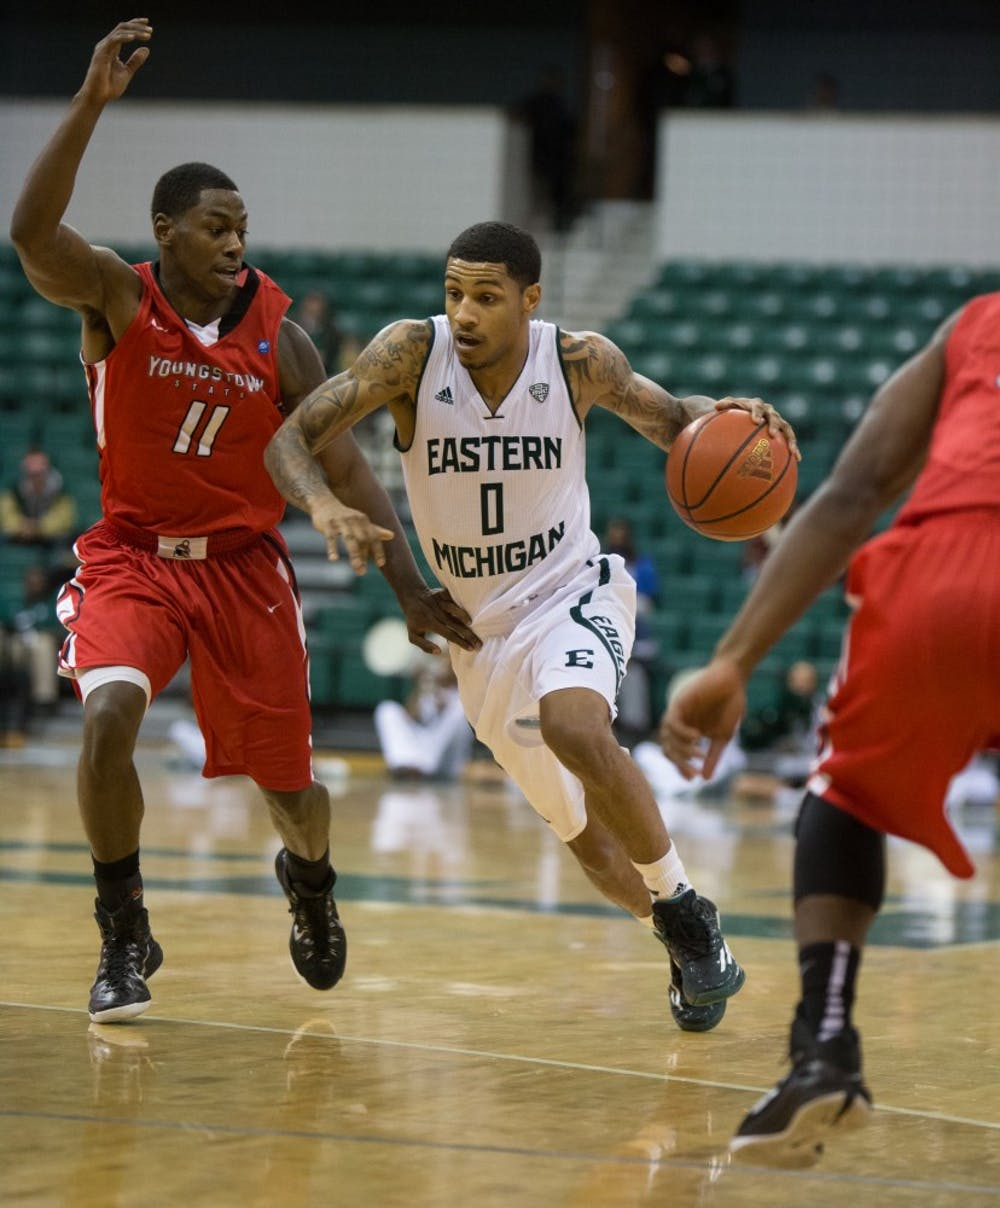 Eagles remain undefeated, defeat Youngstown State 71-62